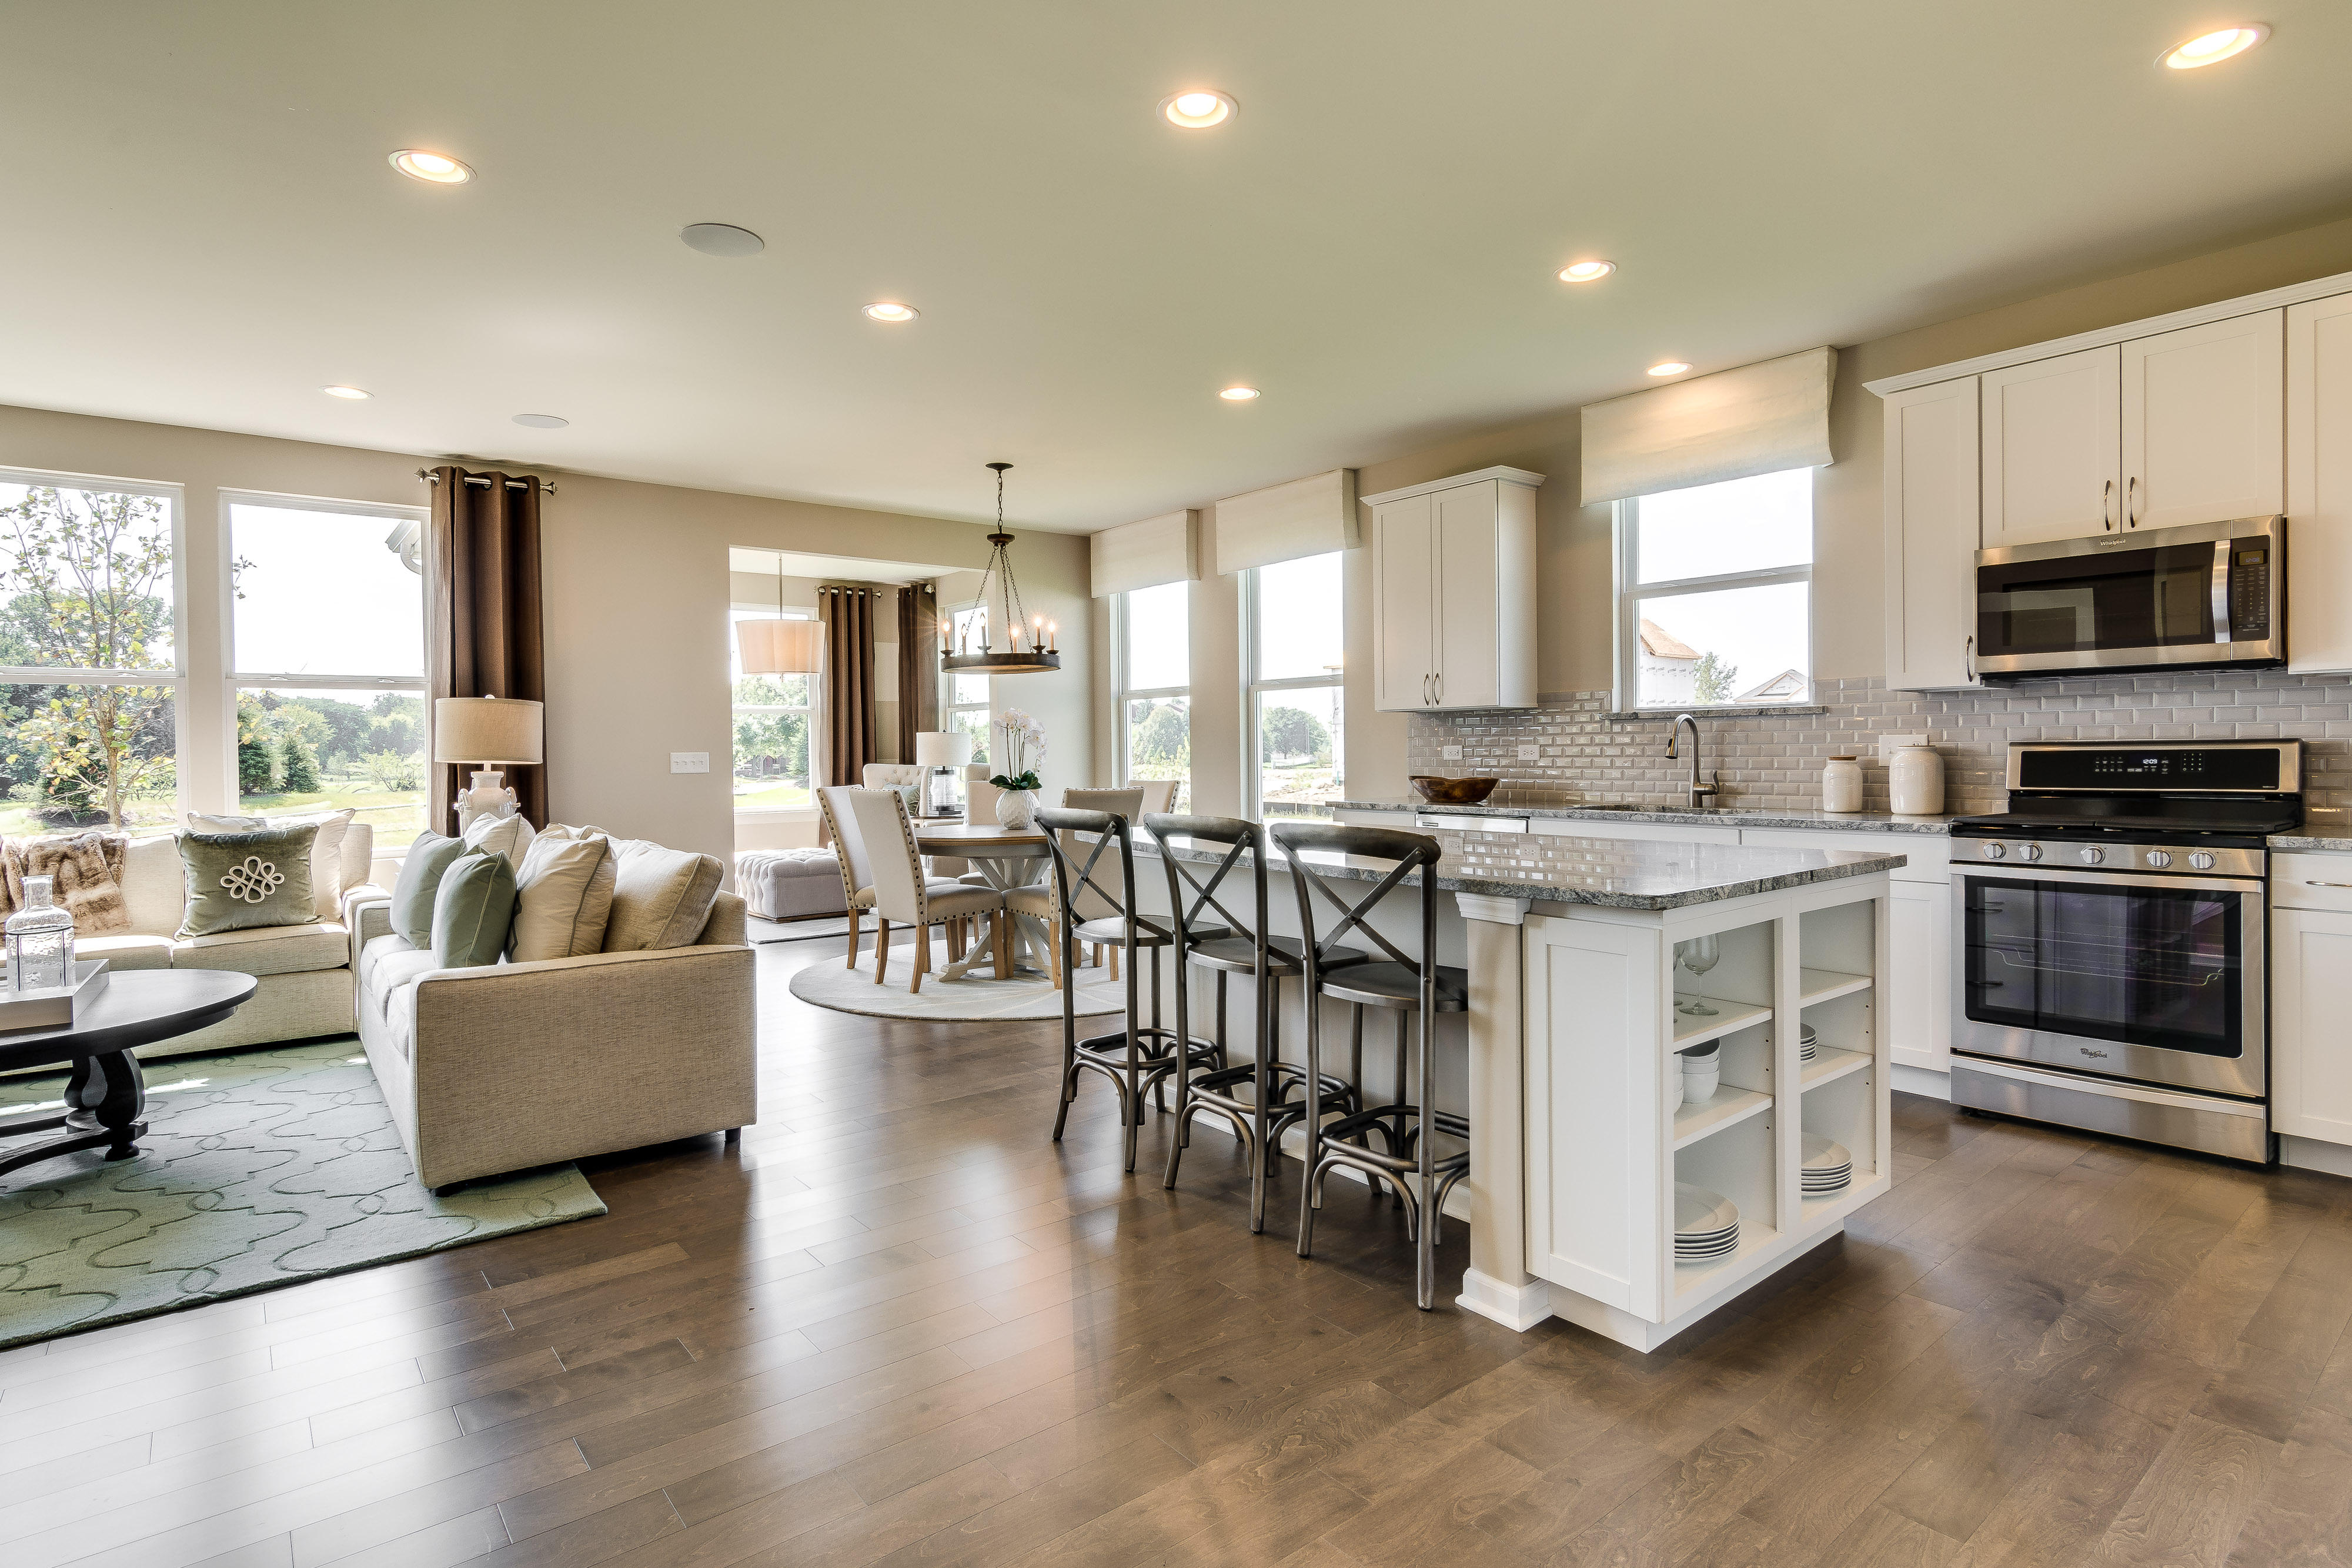 Liberty Green by Pulte Homes image 1